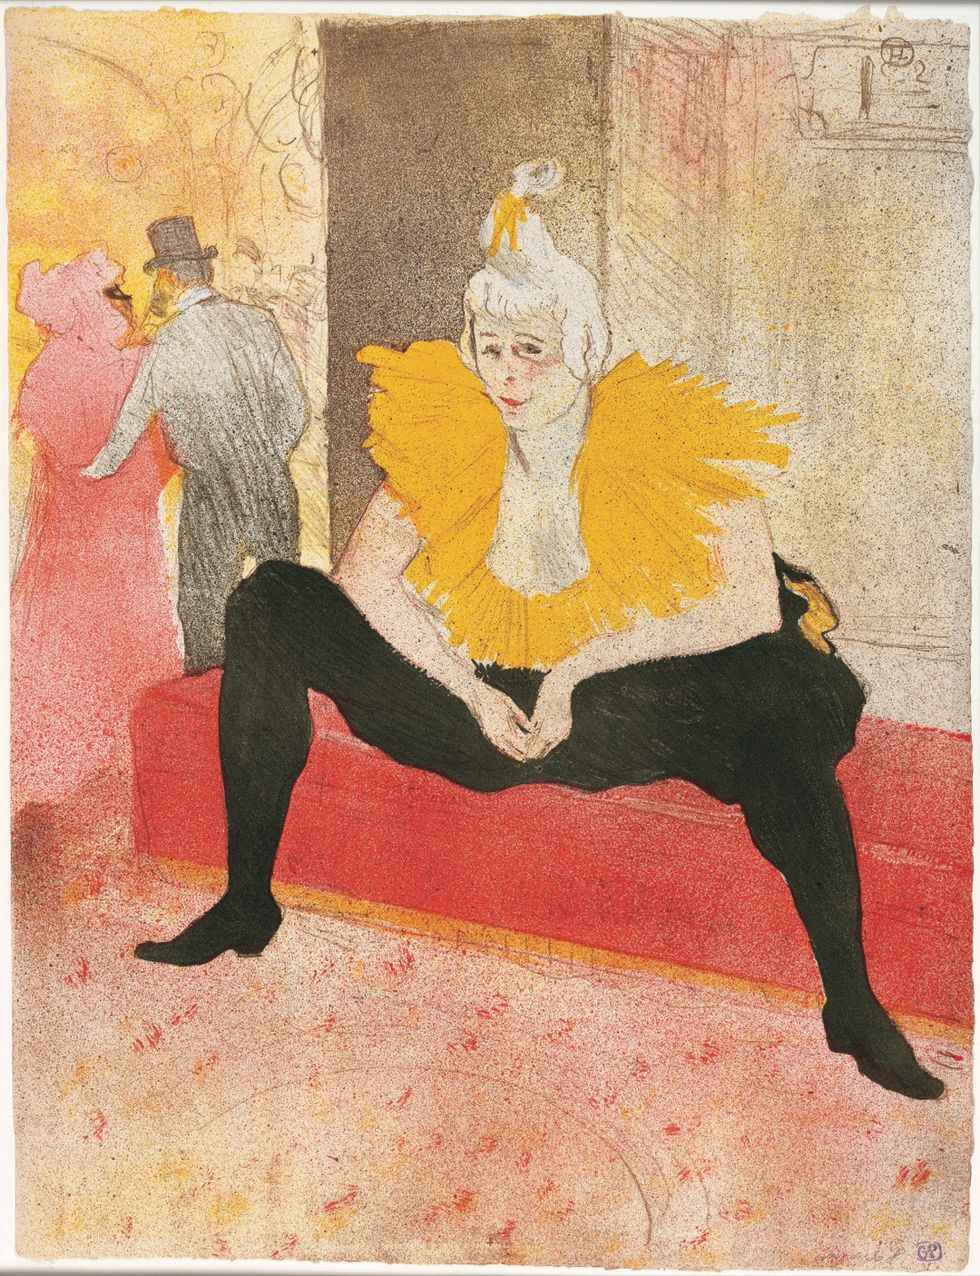 Toulouse-Lautrec in mostra a Milano